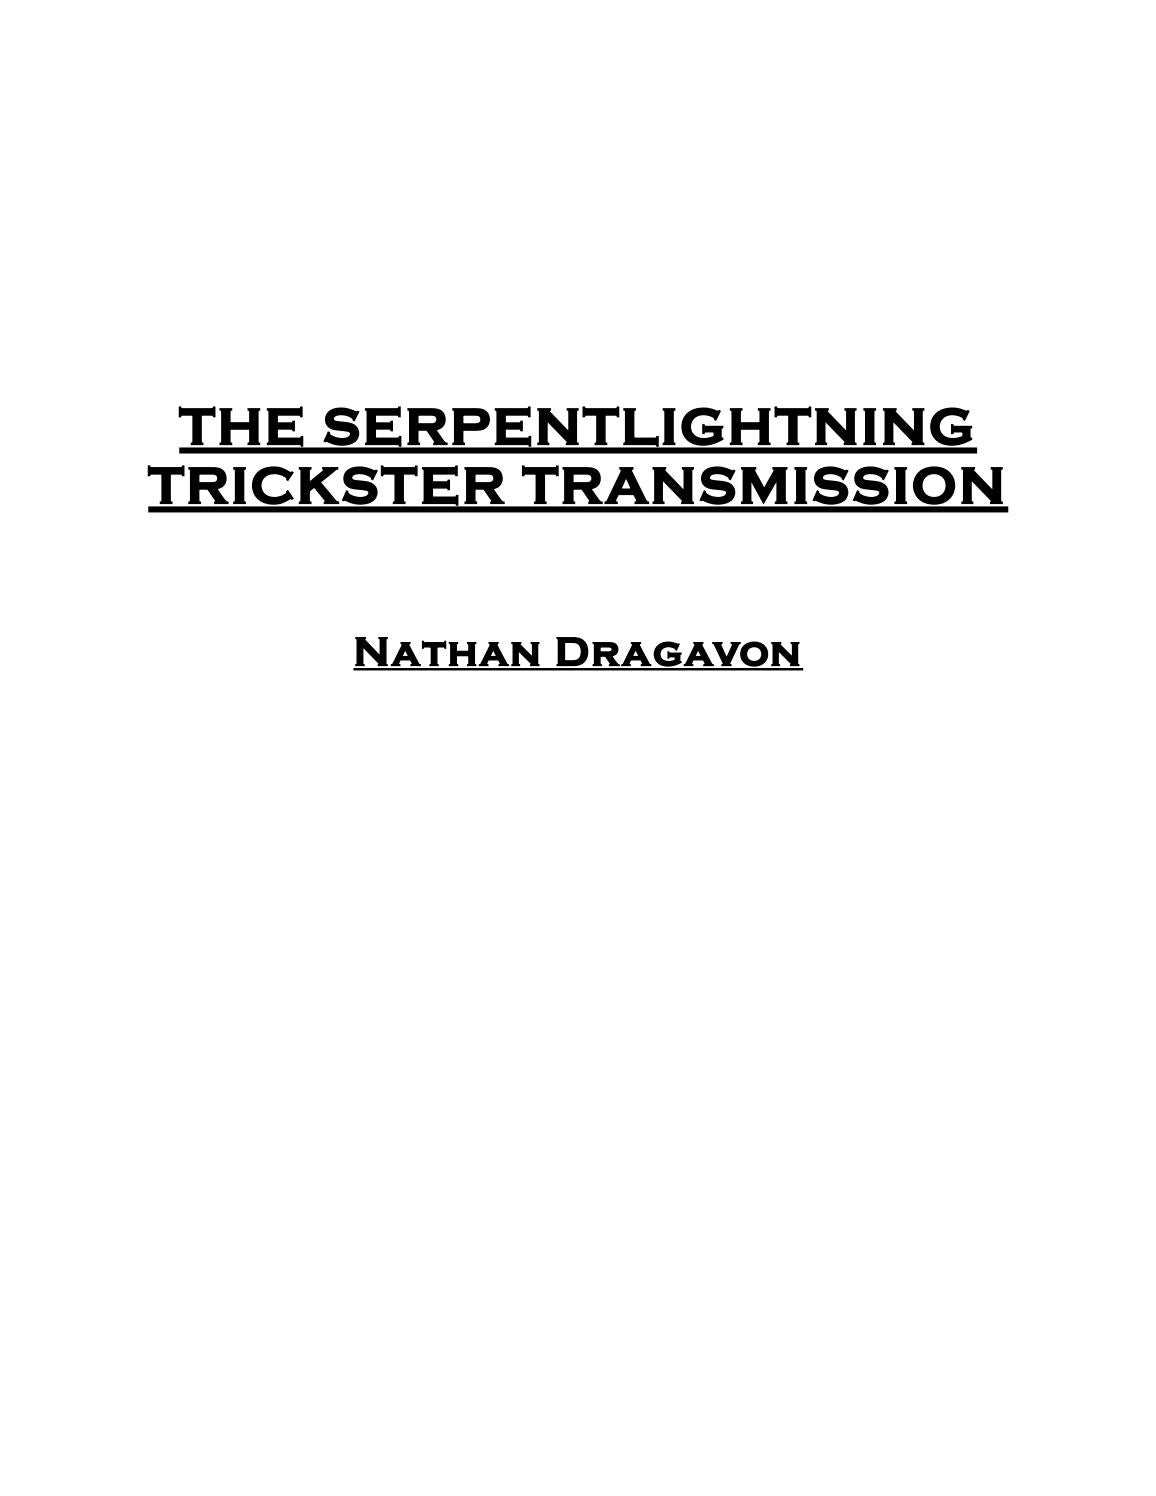 The Serpentlightning Trickster Transmission Part One By Mr Fox Issuu